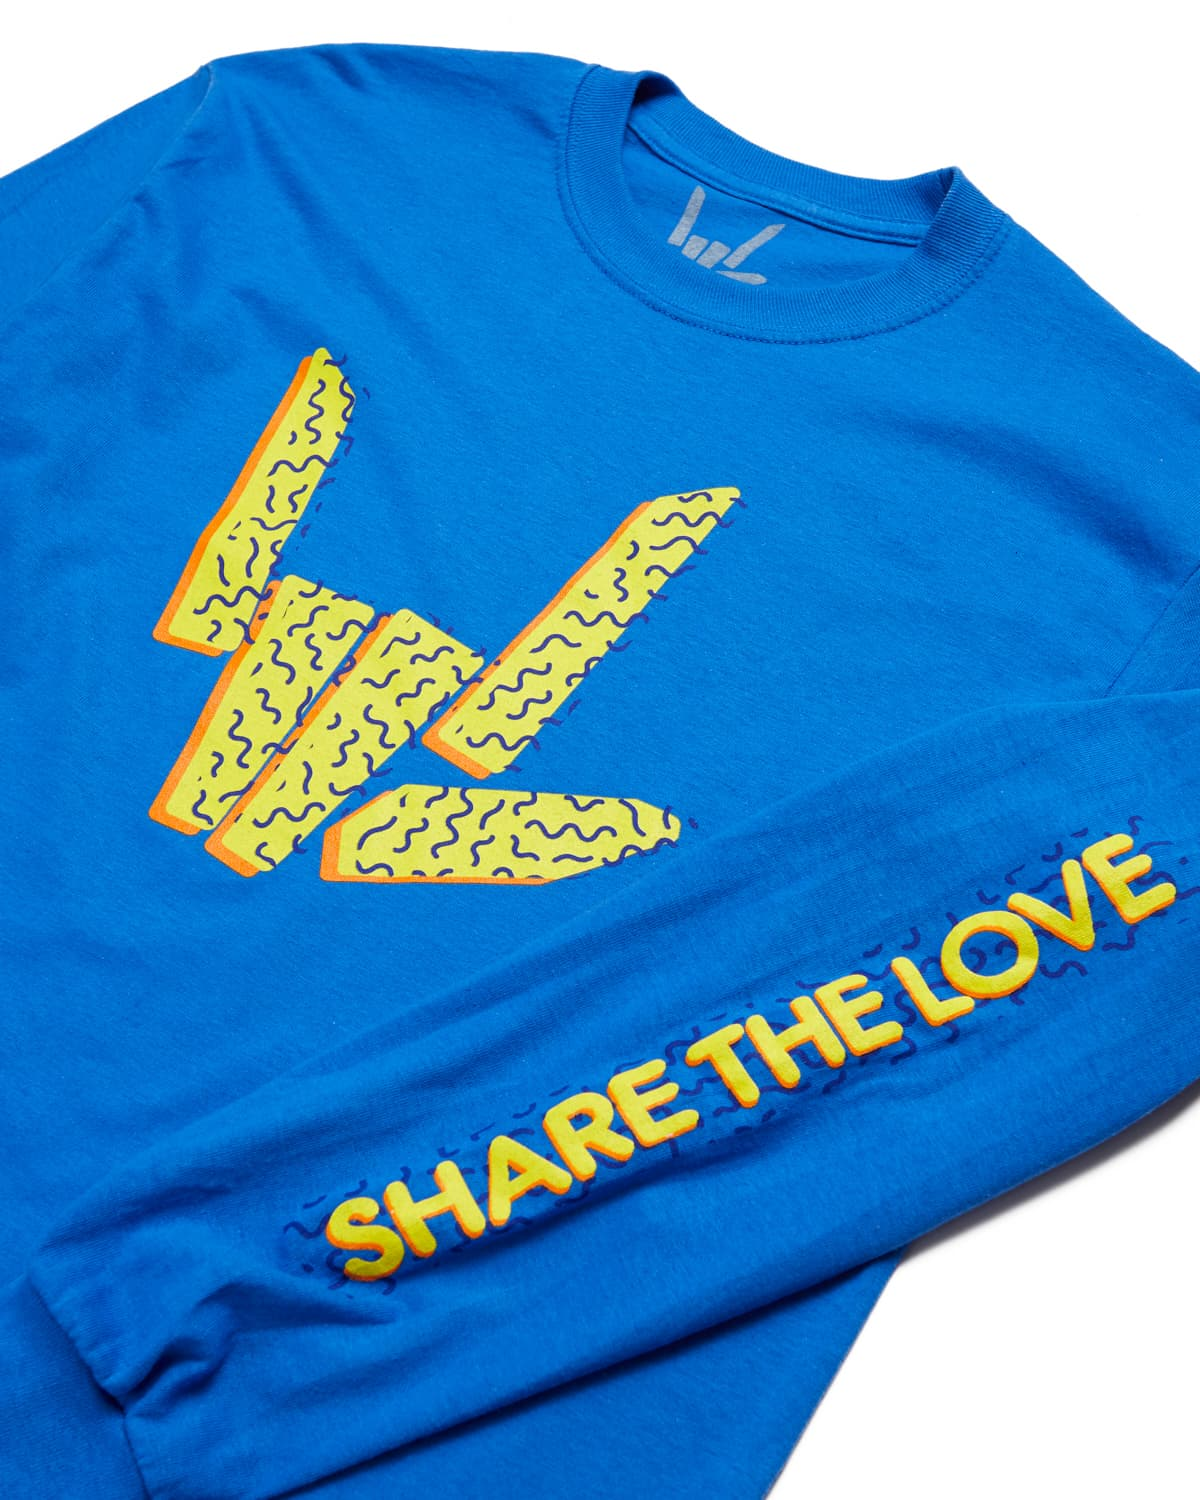 Share The Love 'Confetti' Long Sleeve Tee - Blue